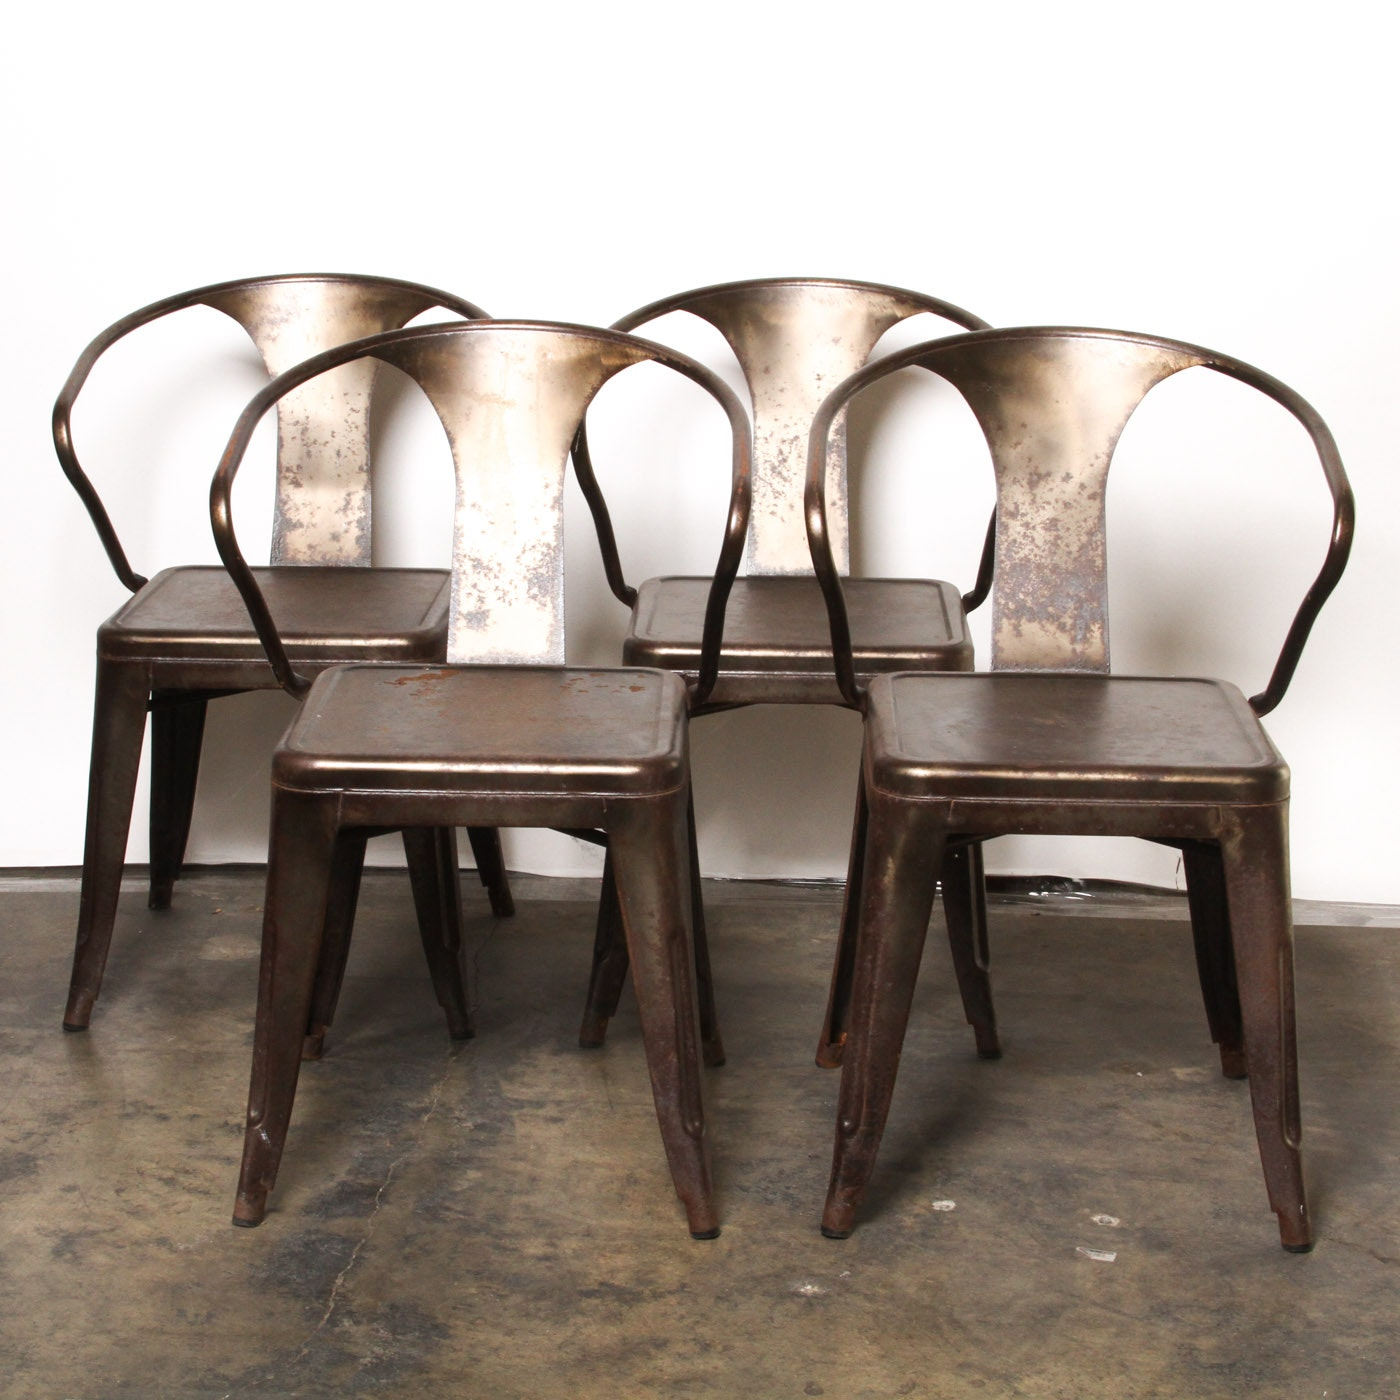 Beau Set Of Tabouret Or Bistro Style Dining Chairs ...